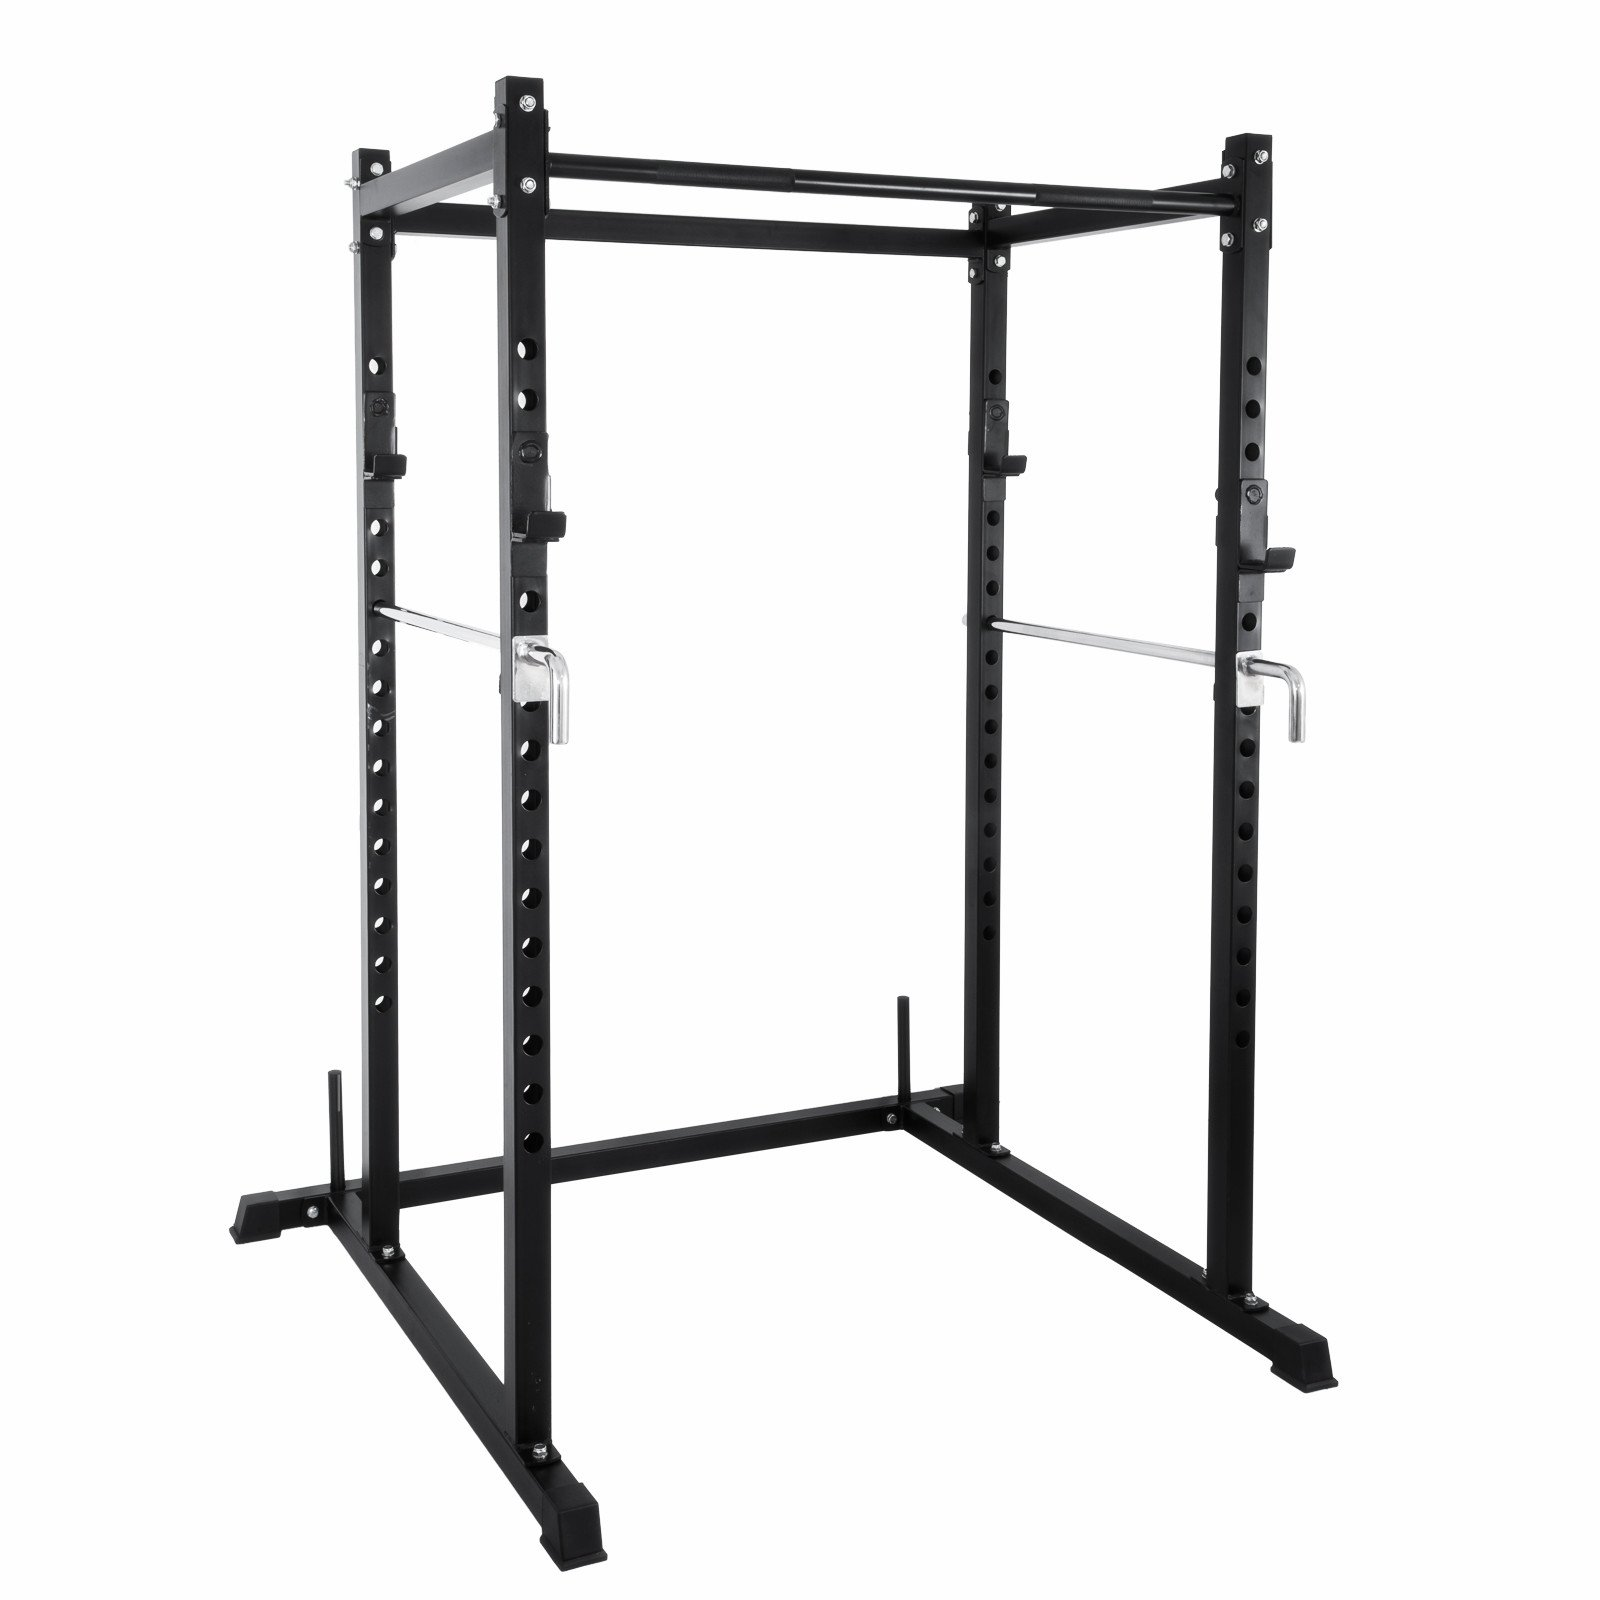 Popsport Deep Squat Rack Series Power Rack Squat Barbell Cage Bench Stand Heavy Duty Multi-Grip Chin-Up Fitness Power Rock for Home Gym (T-2 Series)